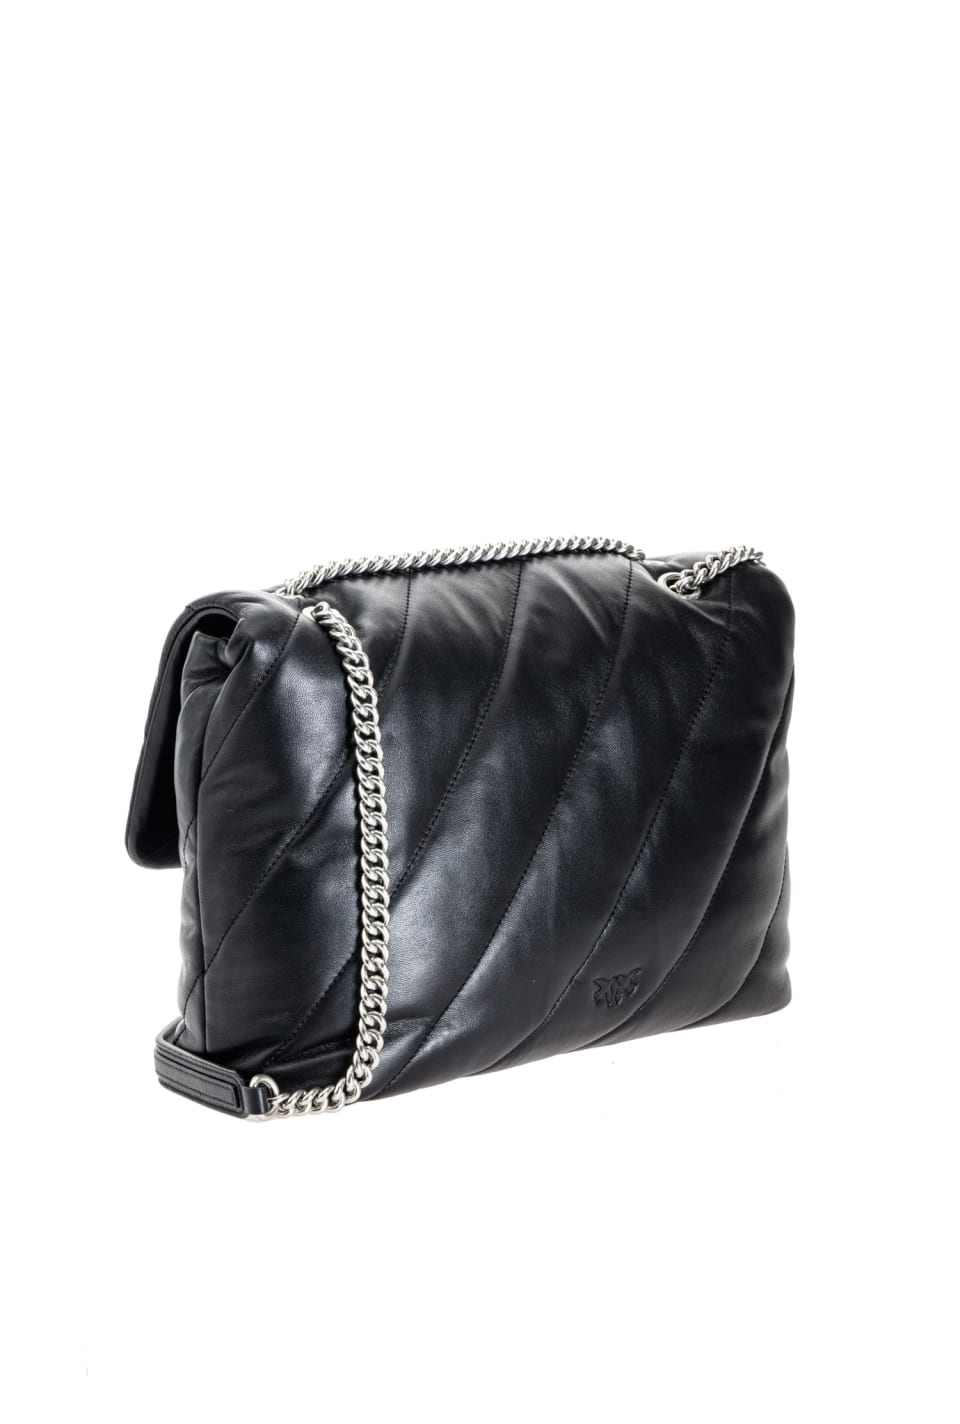 Big Love Bag Puff Maxi Quilt in nappa leather